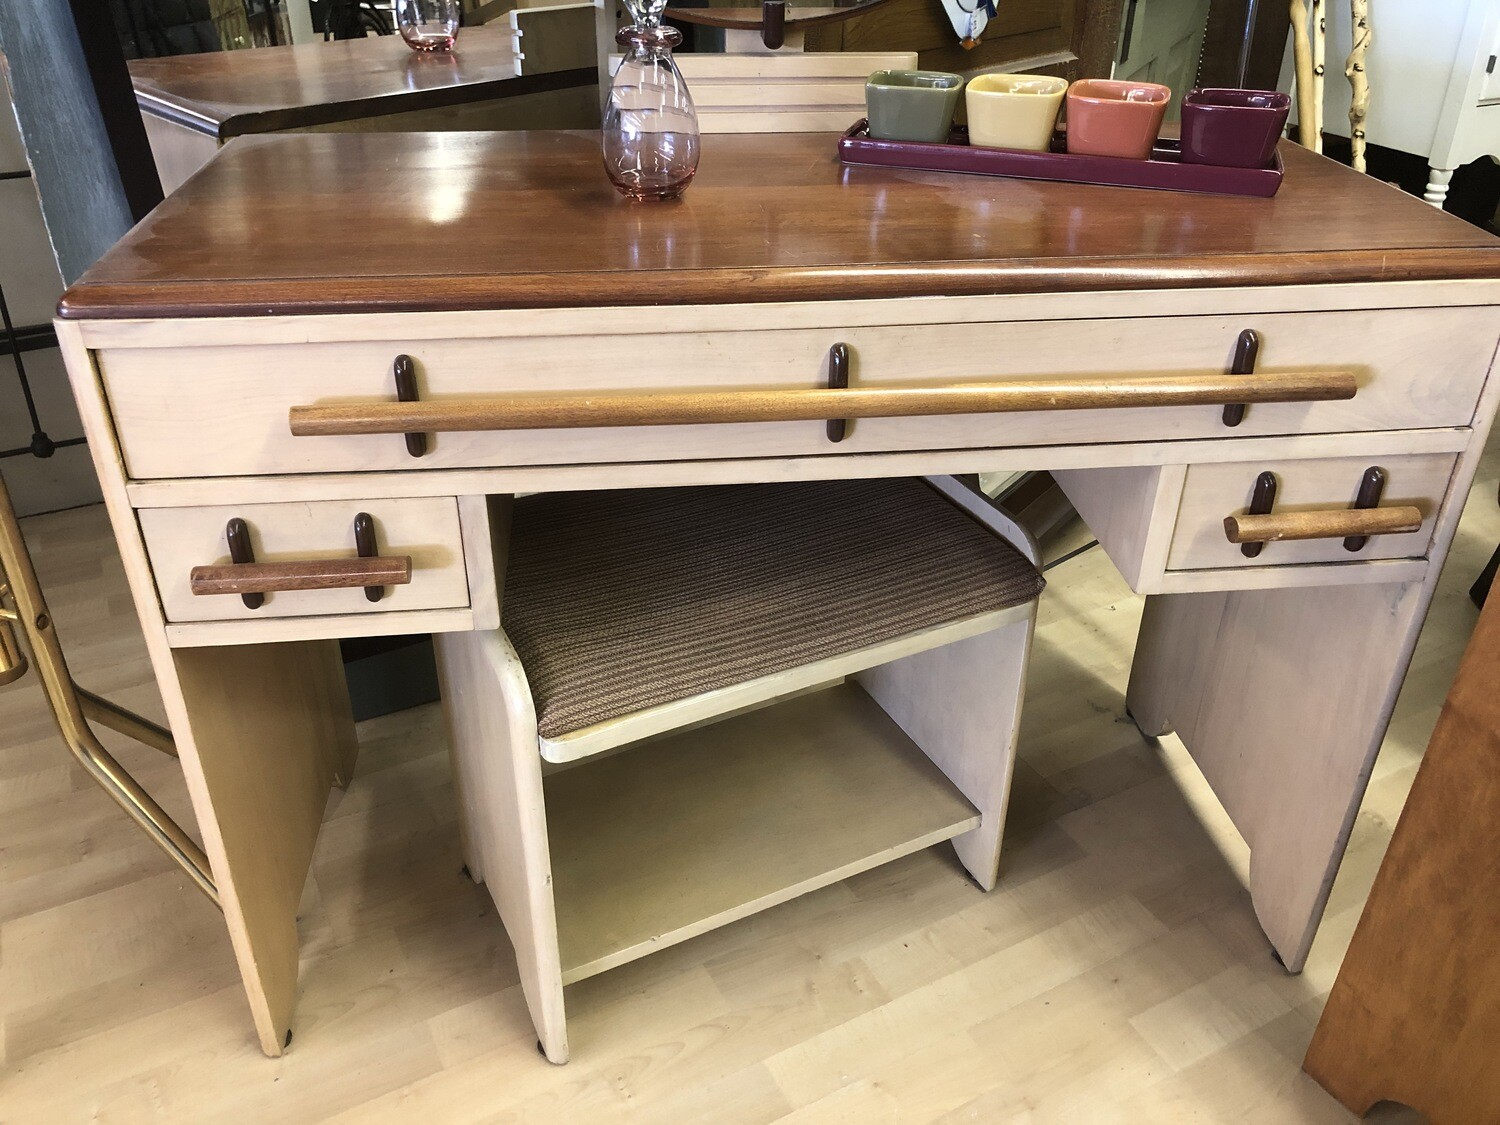 1930s Vanity, Mirror, Stool and Double Bed with Build In Lights